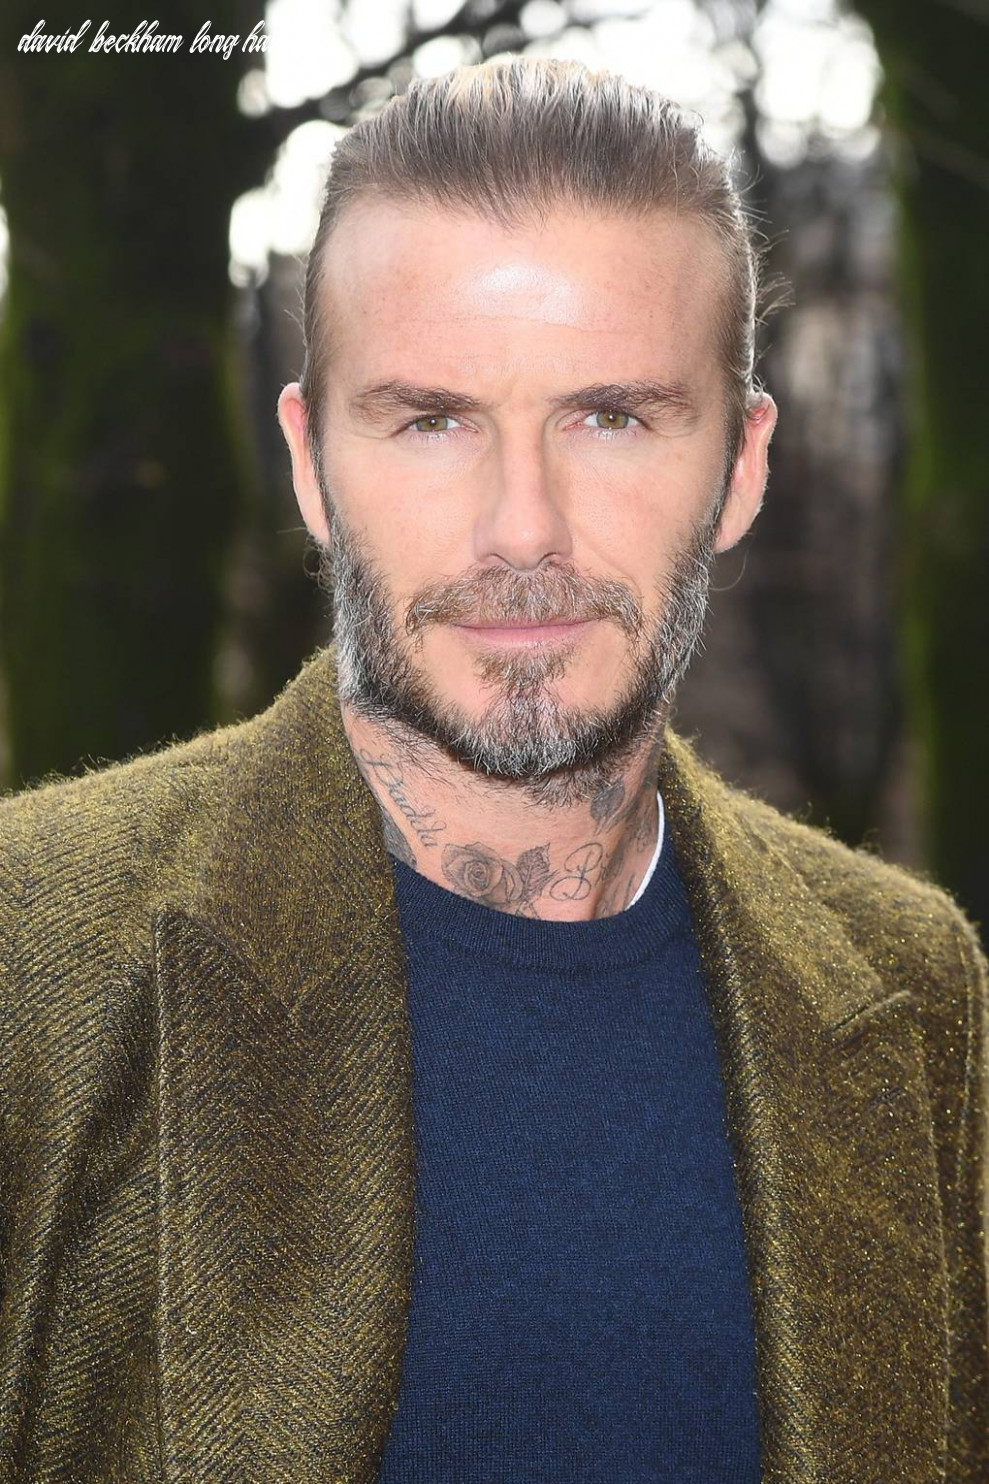 David Beckham Hair - Hairstyles Then And Now | Glamour UK